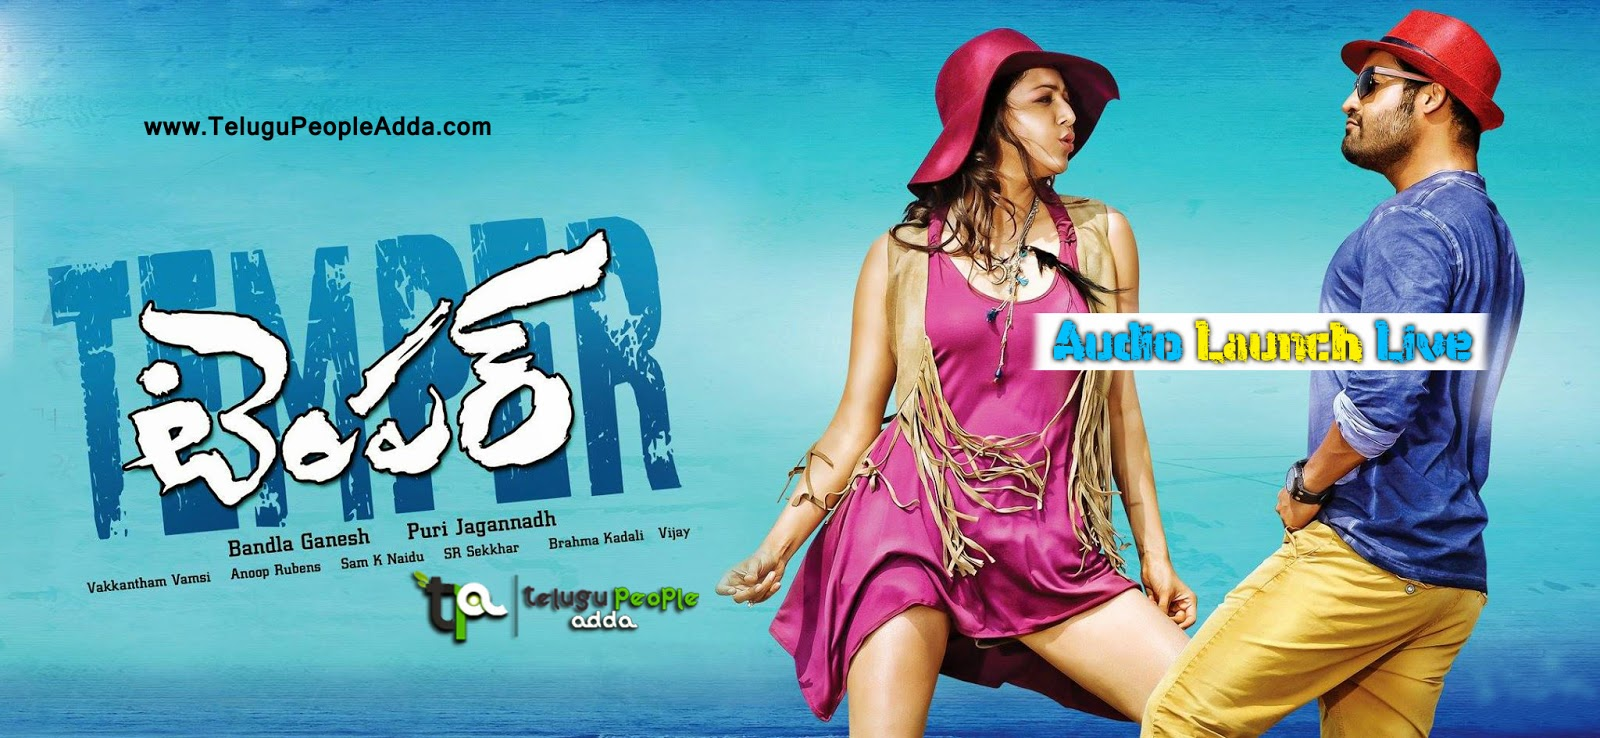 Temper Audio Launch Live | Jr.NTR | Kajal Agarwal